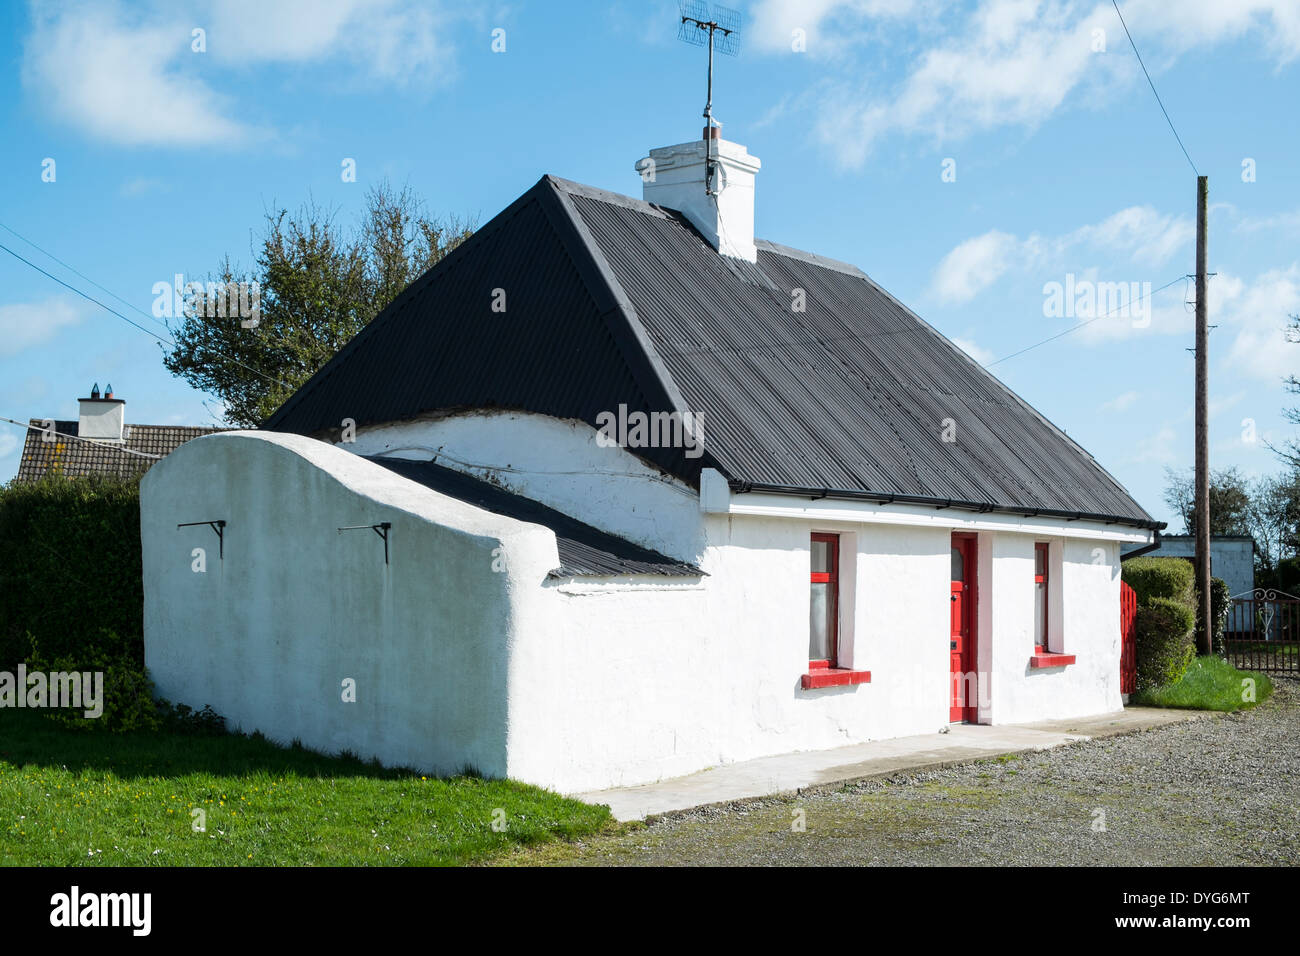 An old cottage, originally thatched but now with a corrugated iron roof on top, quite traditional - Balscadden, - Stock Image